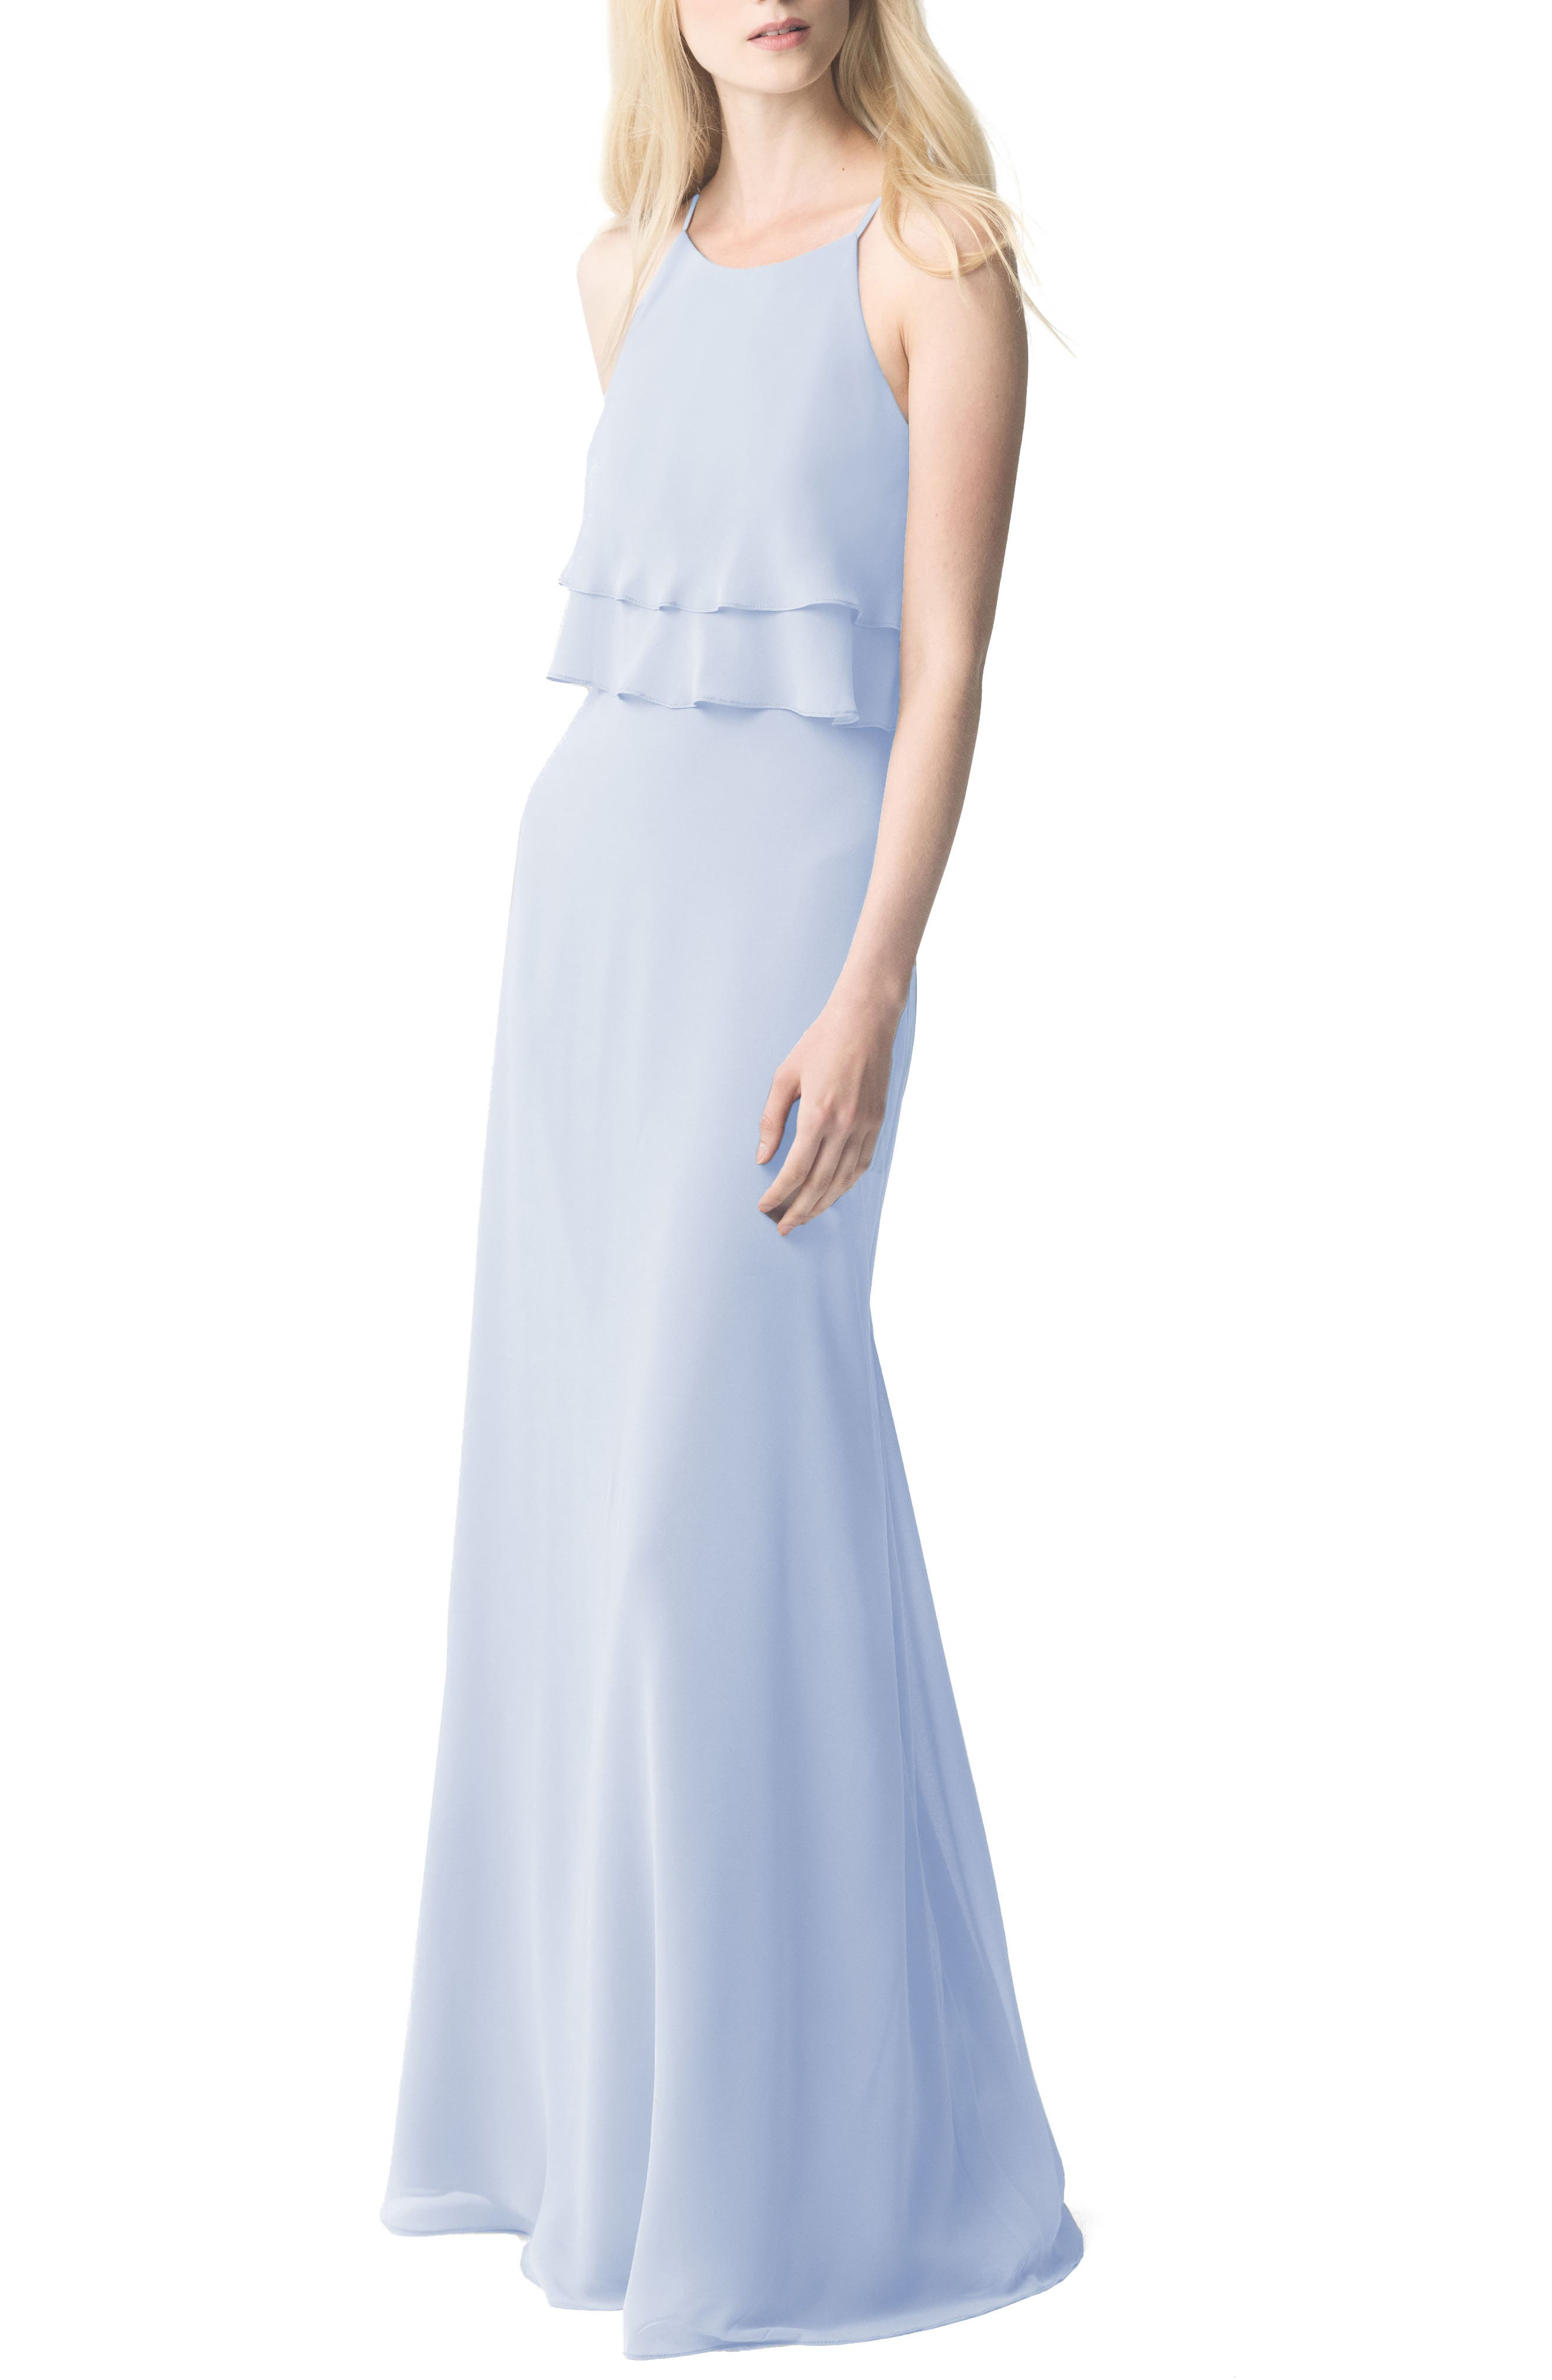 Charlie Ruffle Chiffon Gown,                         Main,                         color, Whisper Blue